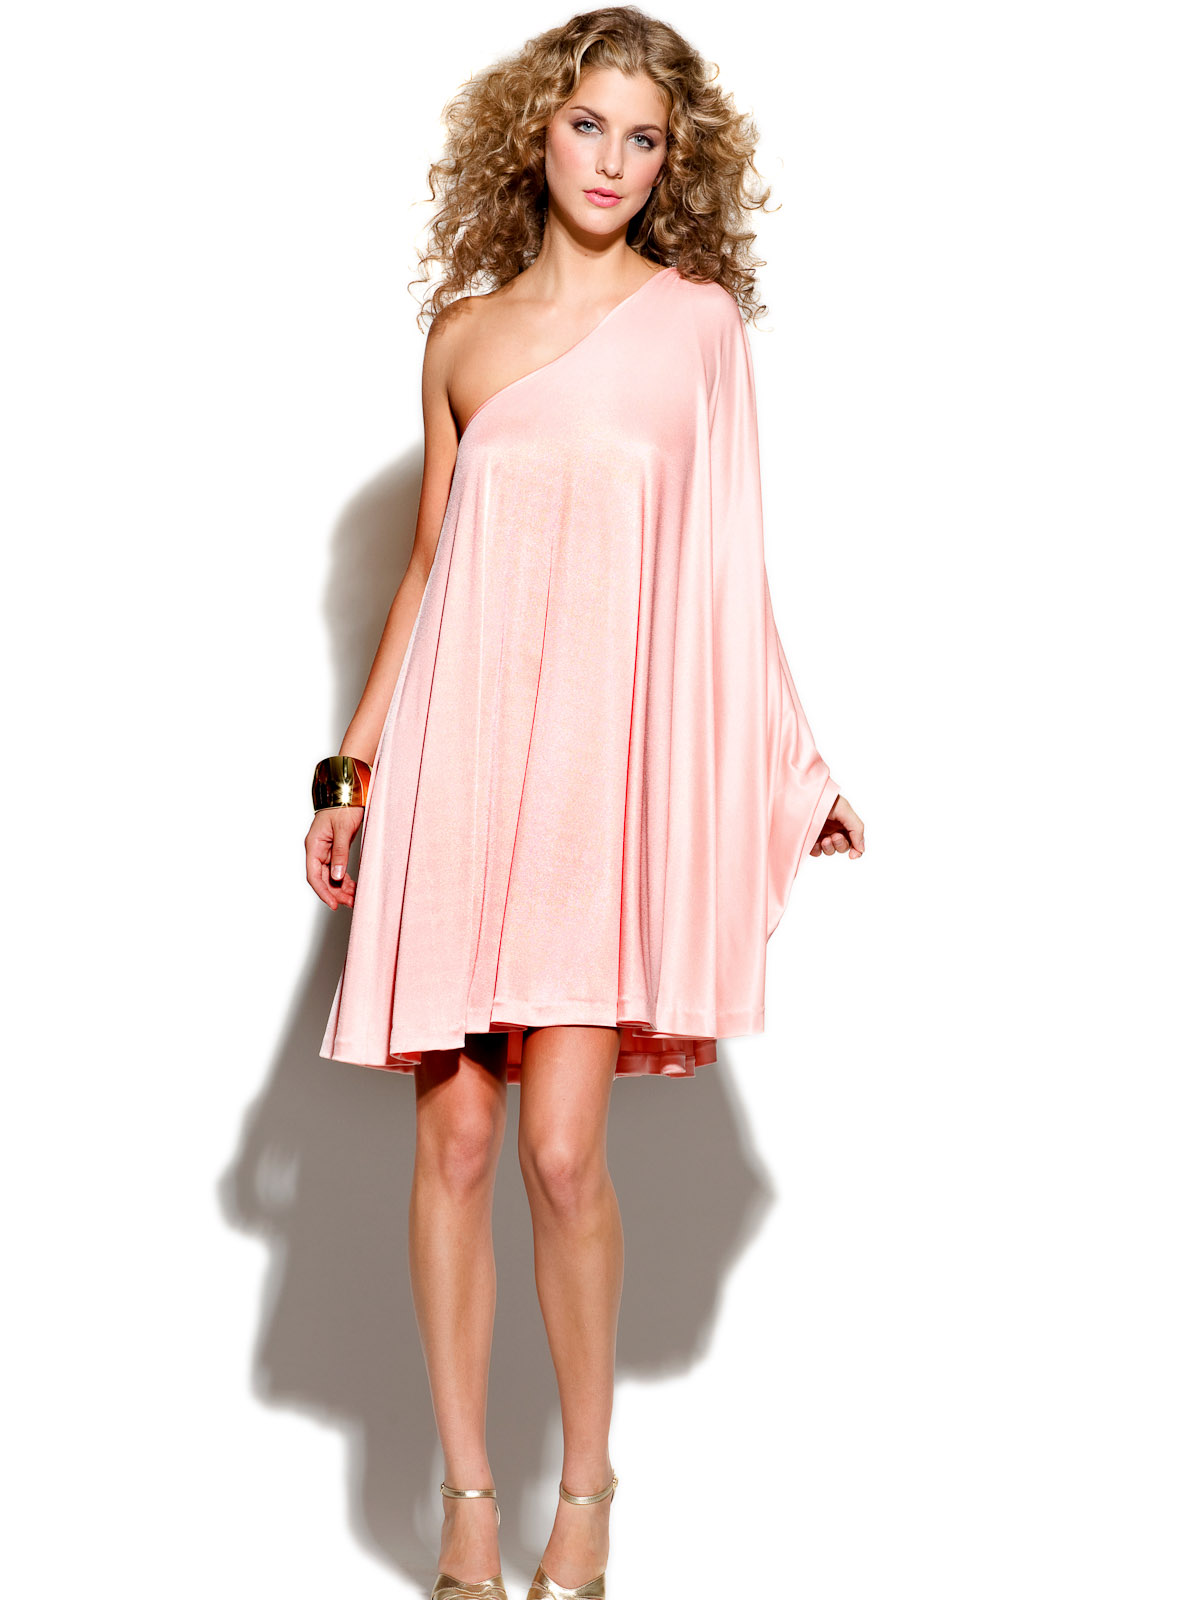 News_Heather Staible_Sex and the City_Halston Heritage_pink dress